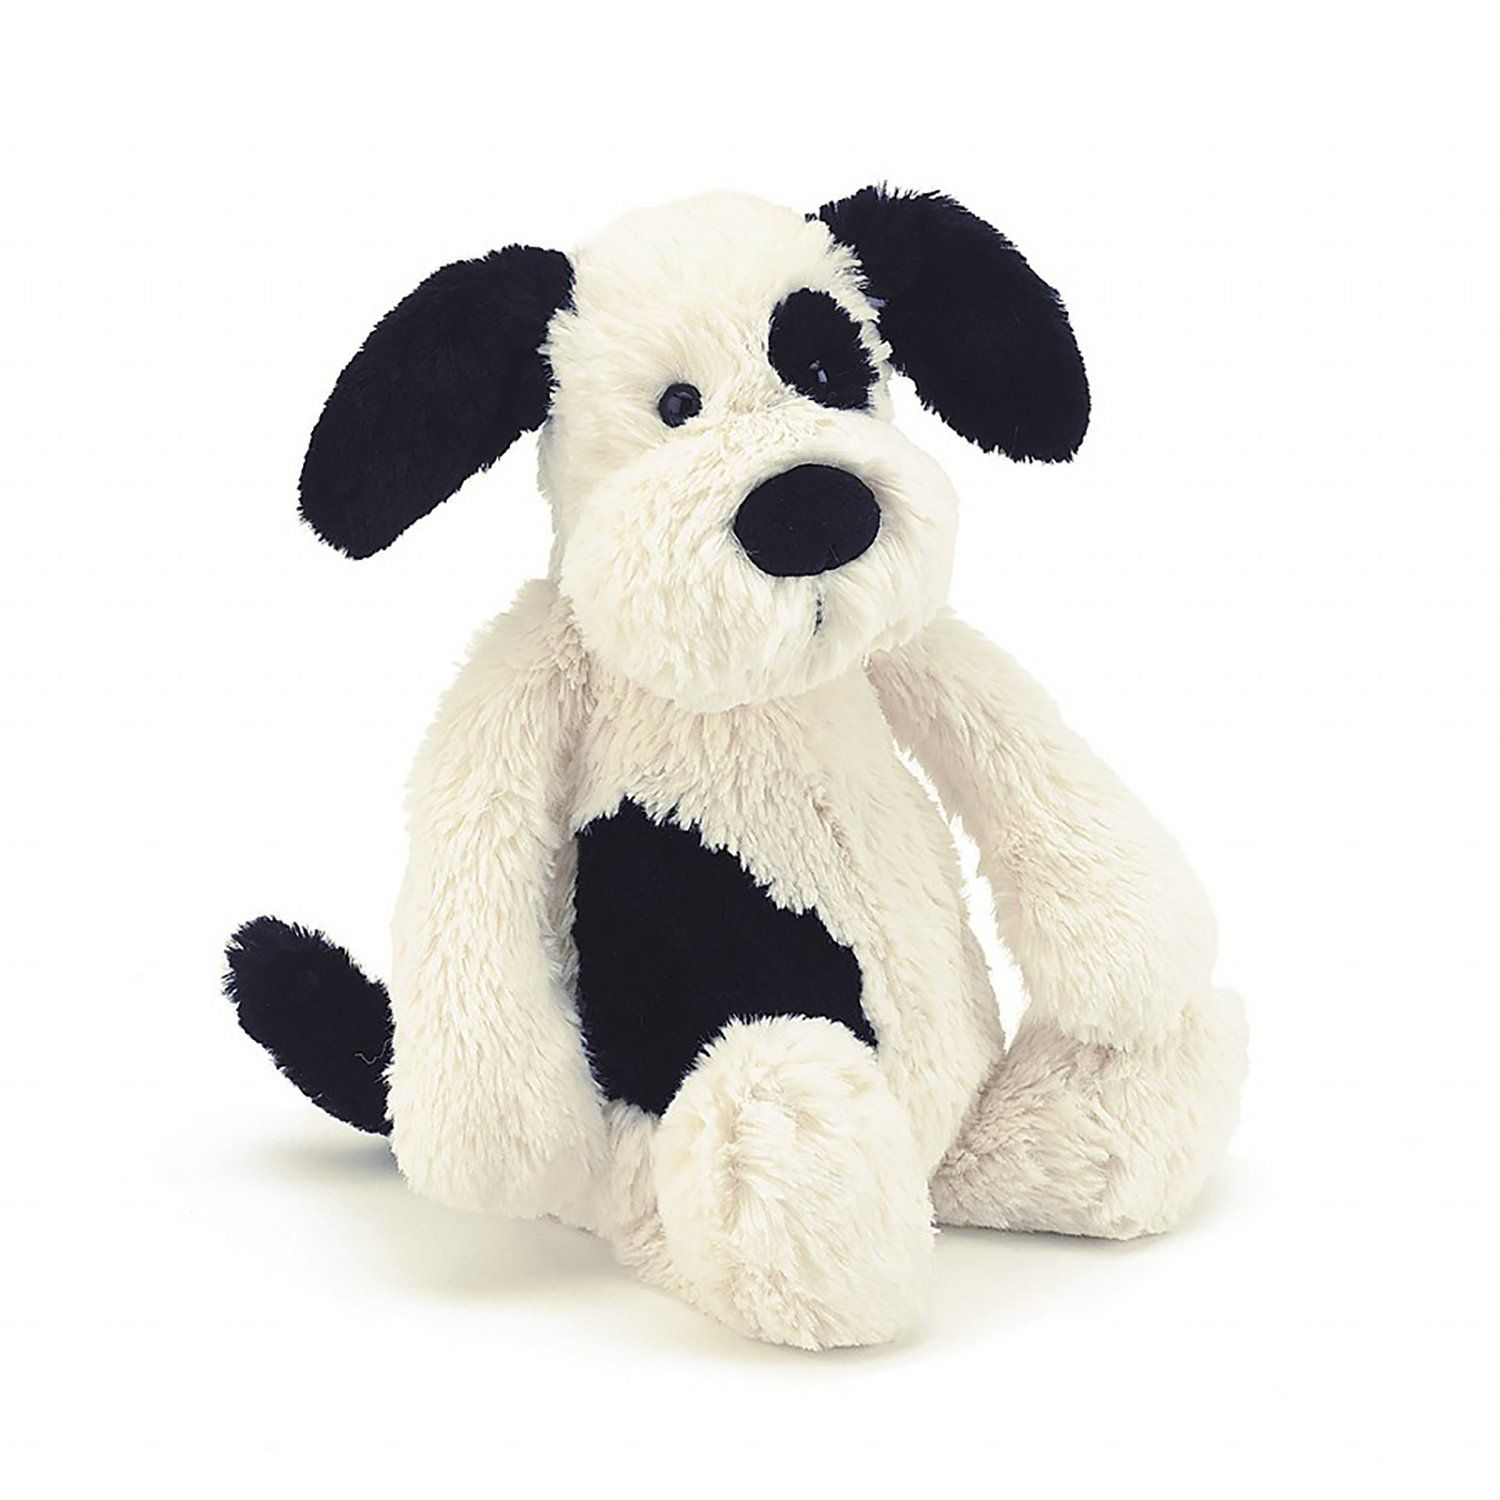 Pin by Claire BaumannRoembach on Nursery Puppy soft toy